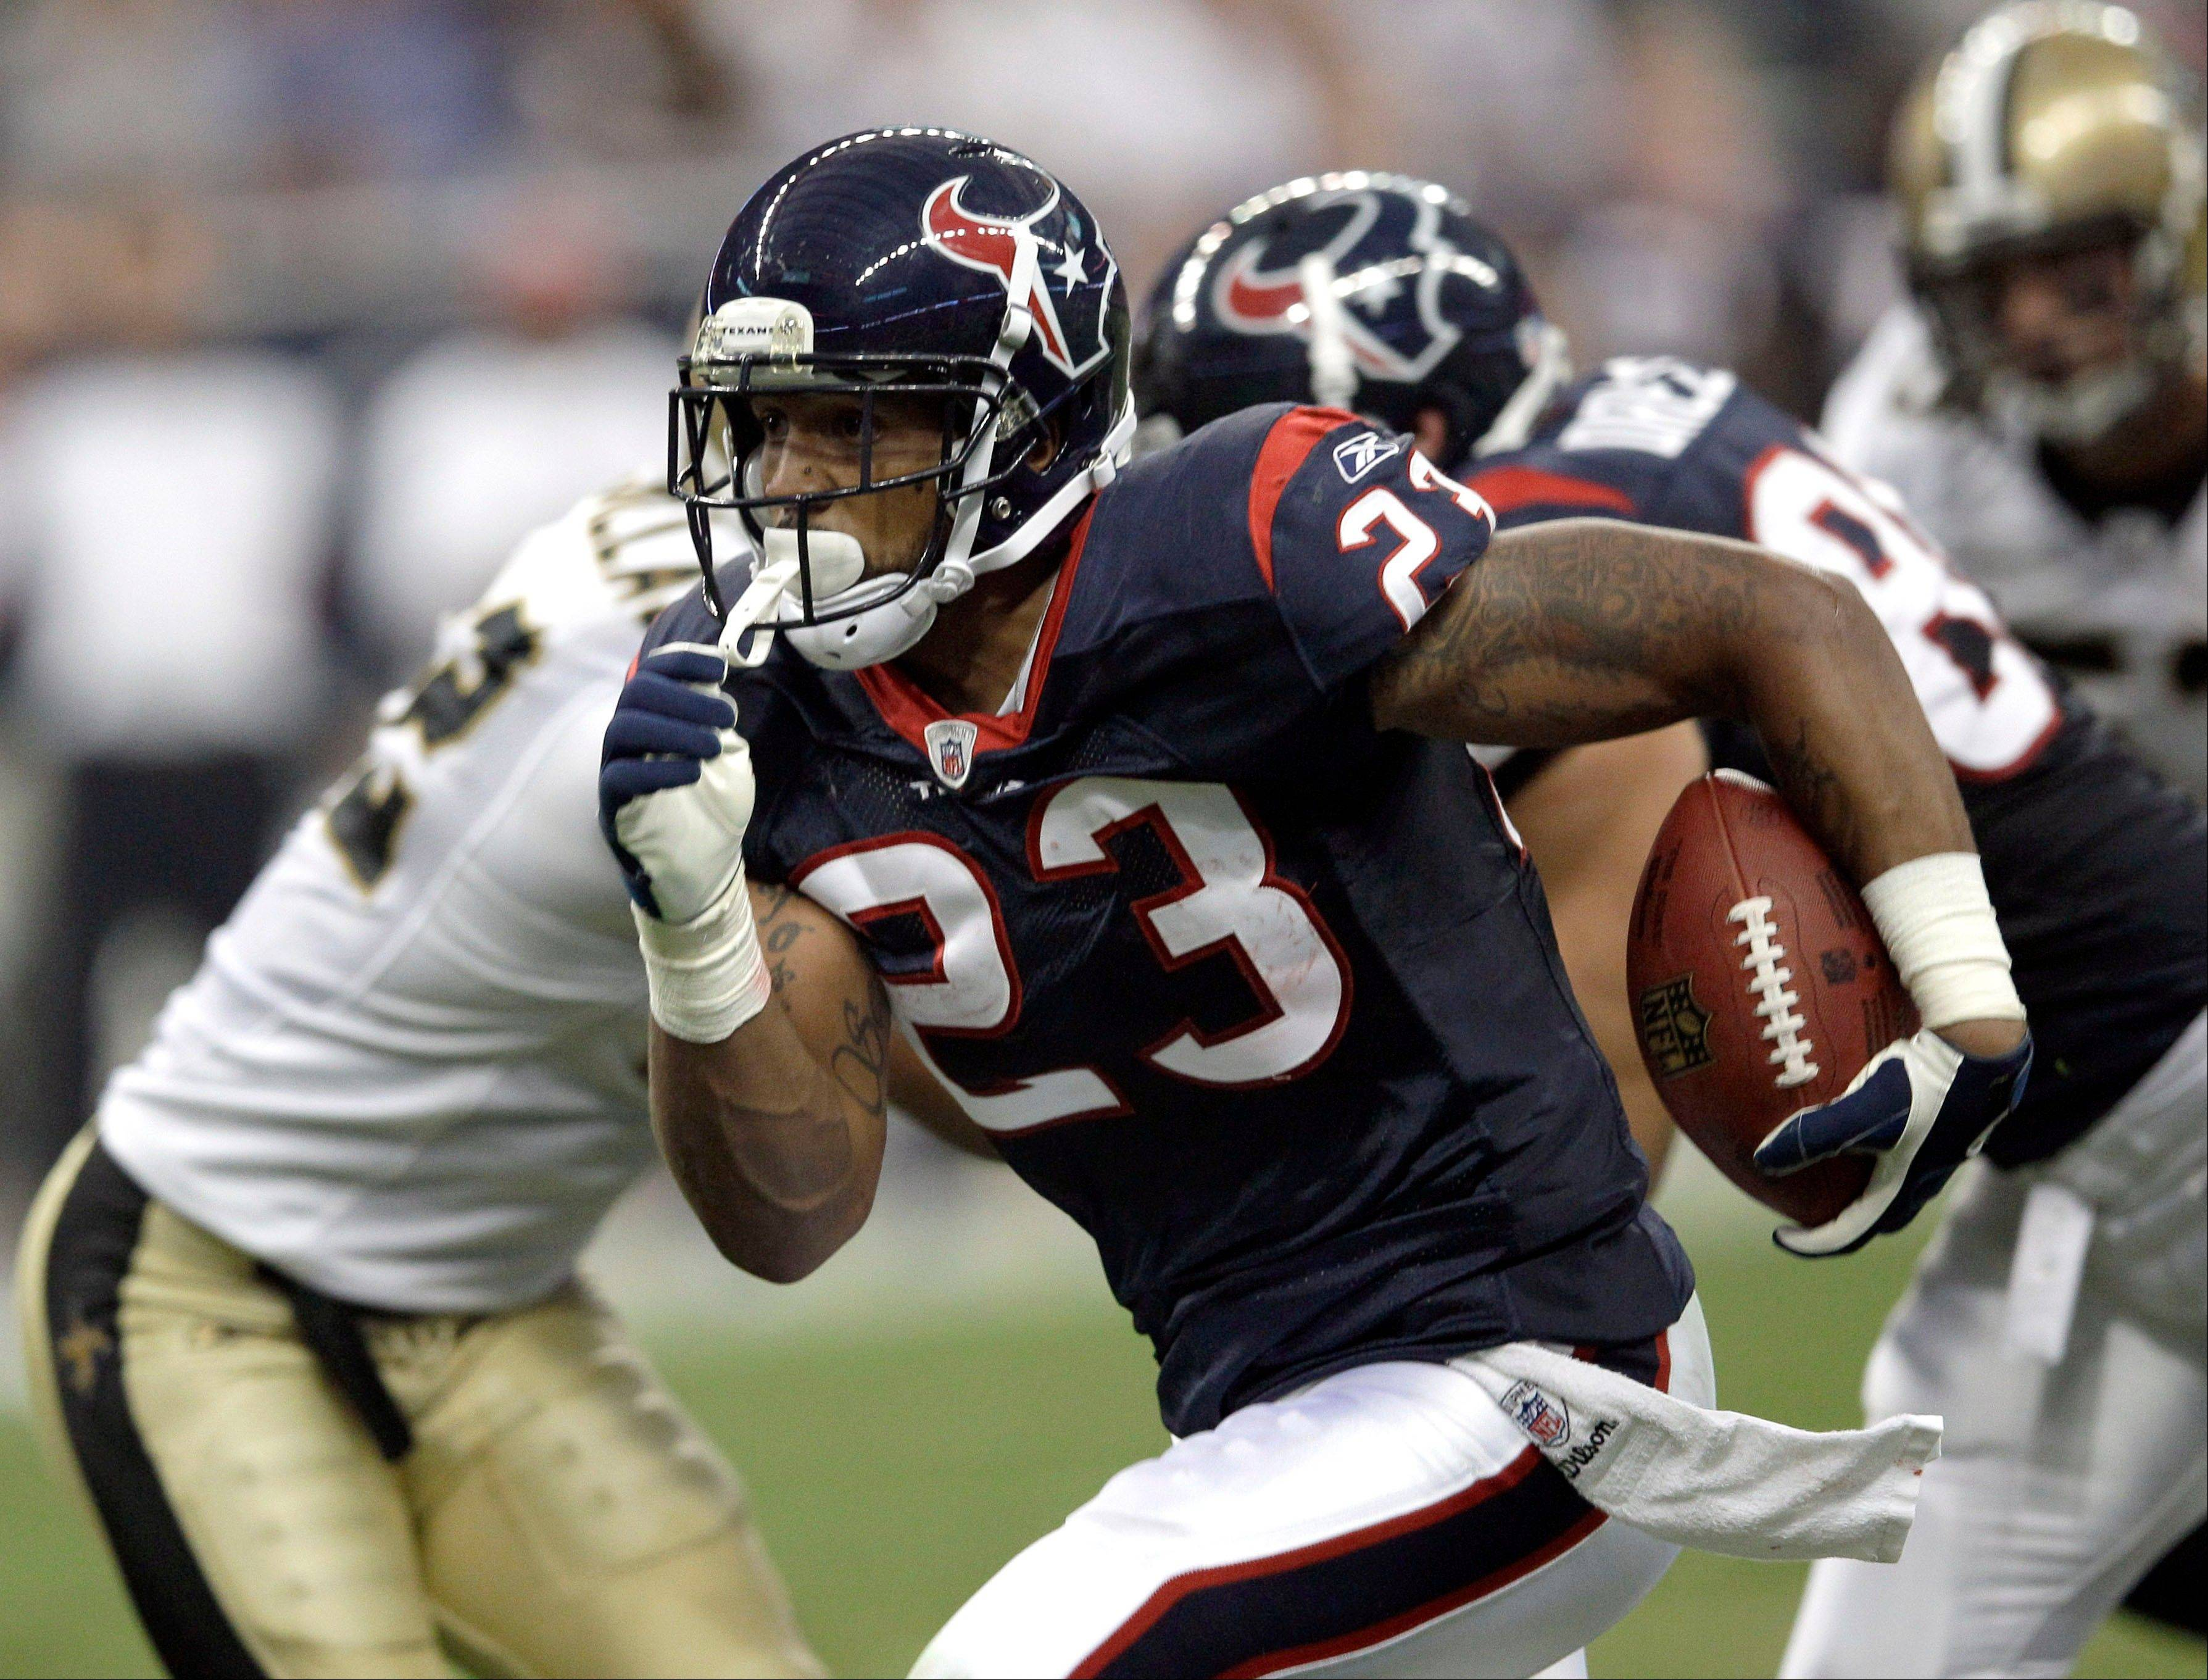 Do you want a piece of Houston Texans running back Arian Foster? A brokerage company is about to sell stock in the NFL star running back, gambling on his moneymaking potential.